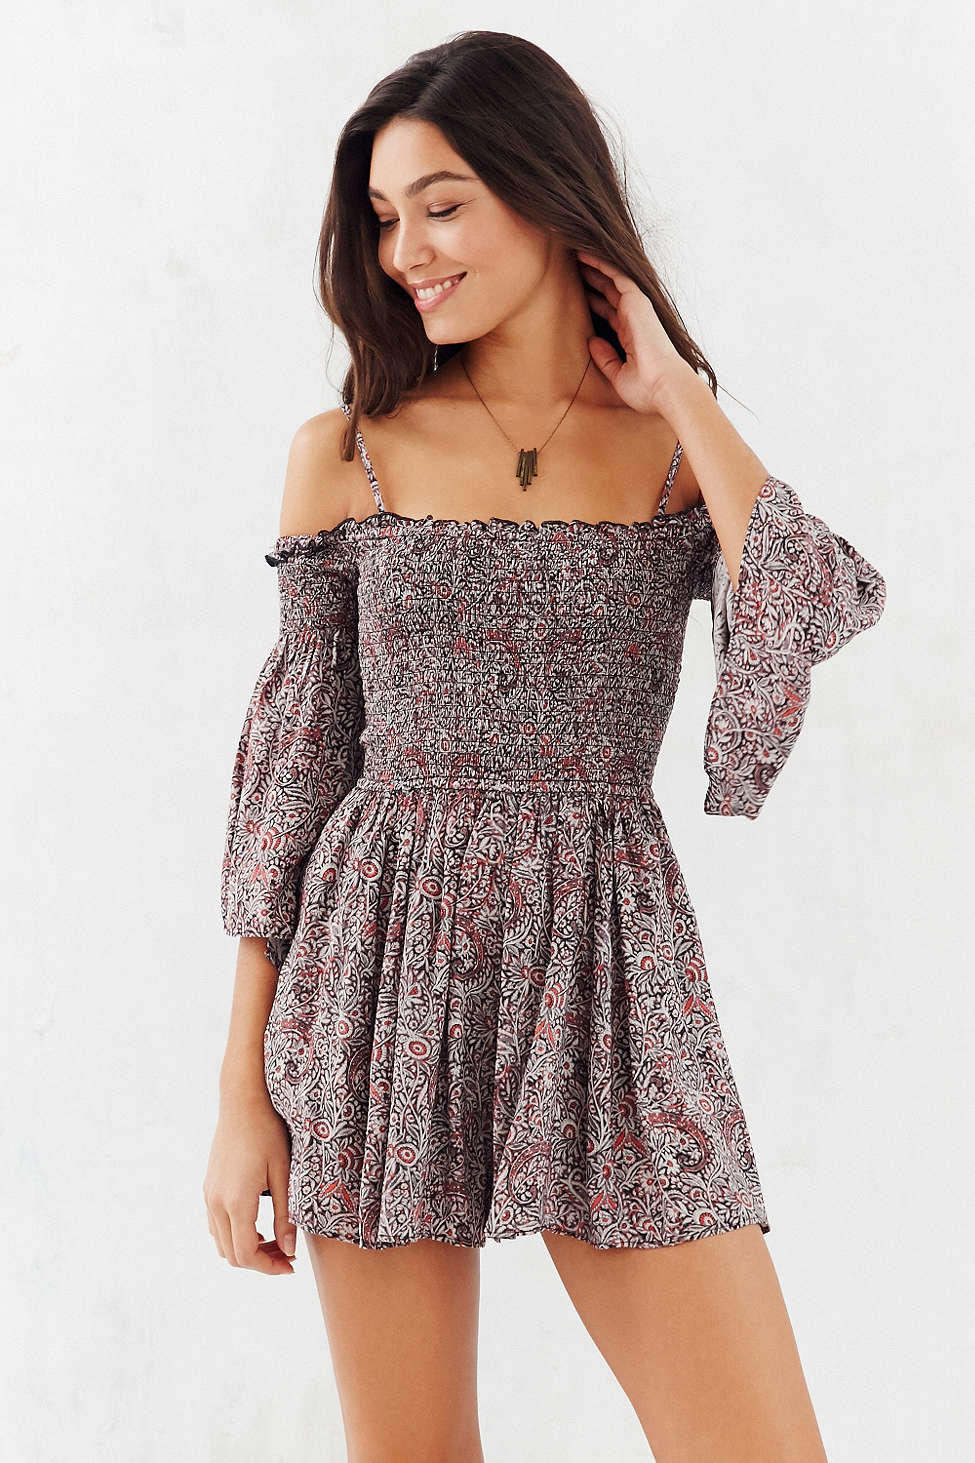 Ecote Lula Romper - Urban Outfitters from Urban Outfitters